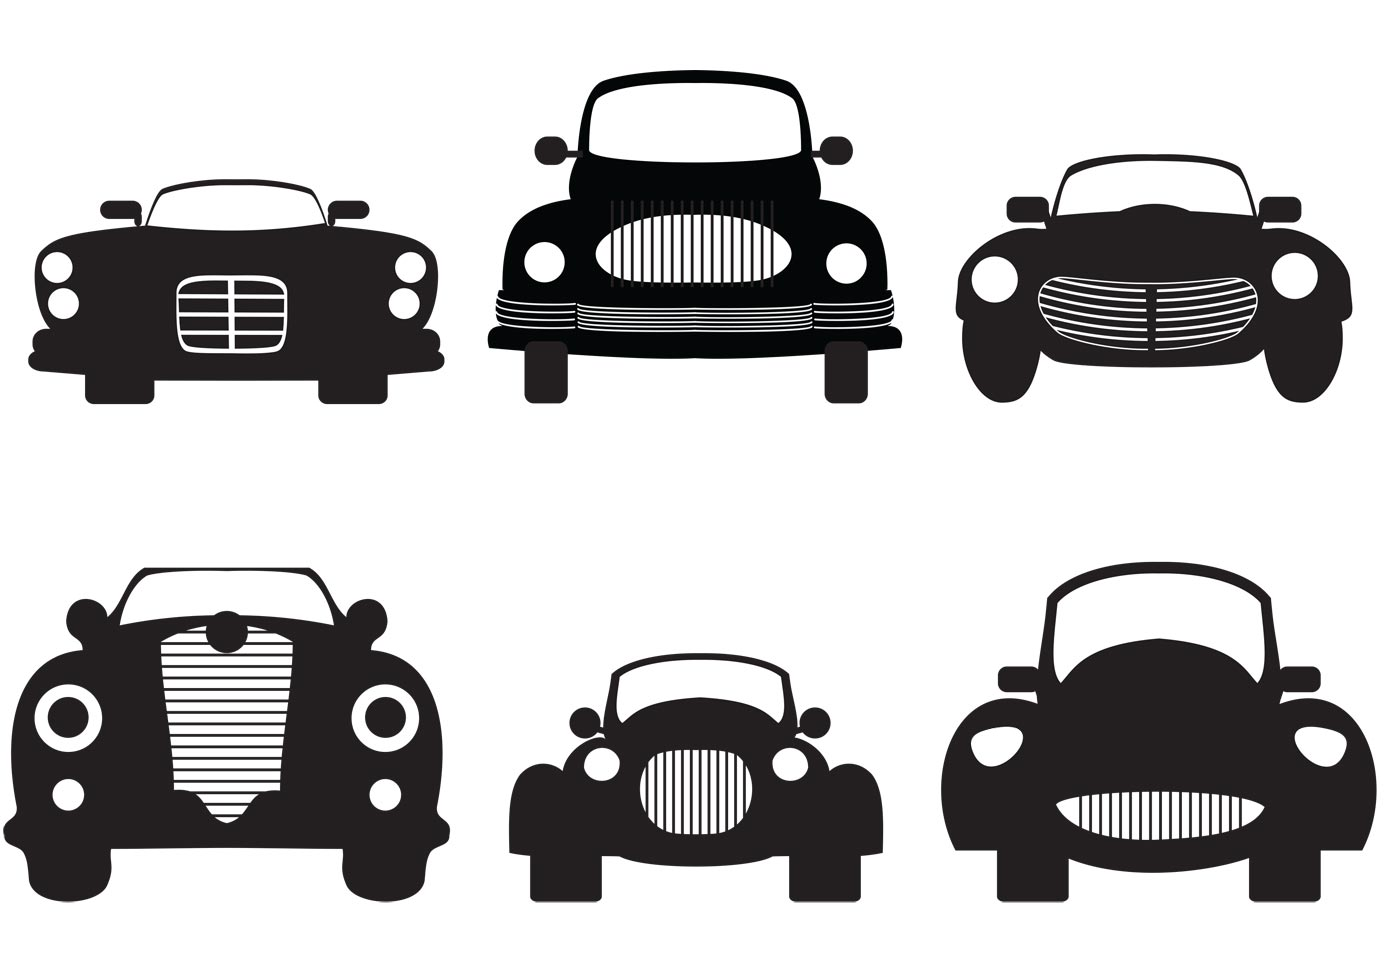 Classic Car Silhouette - Download Free Vector Art, Stock Graphics ...